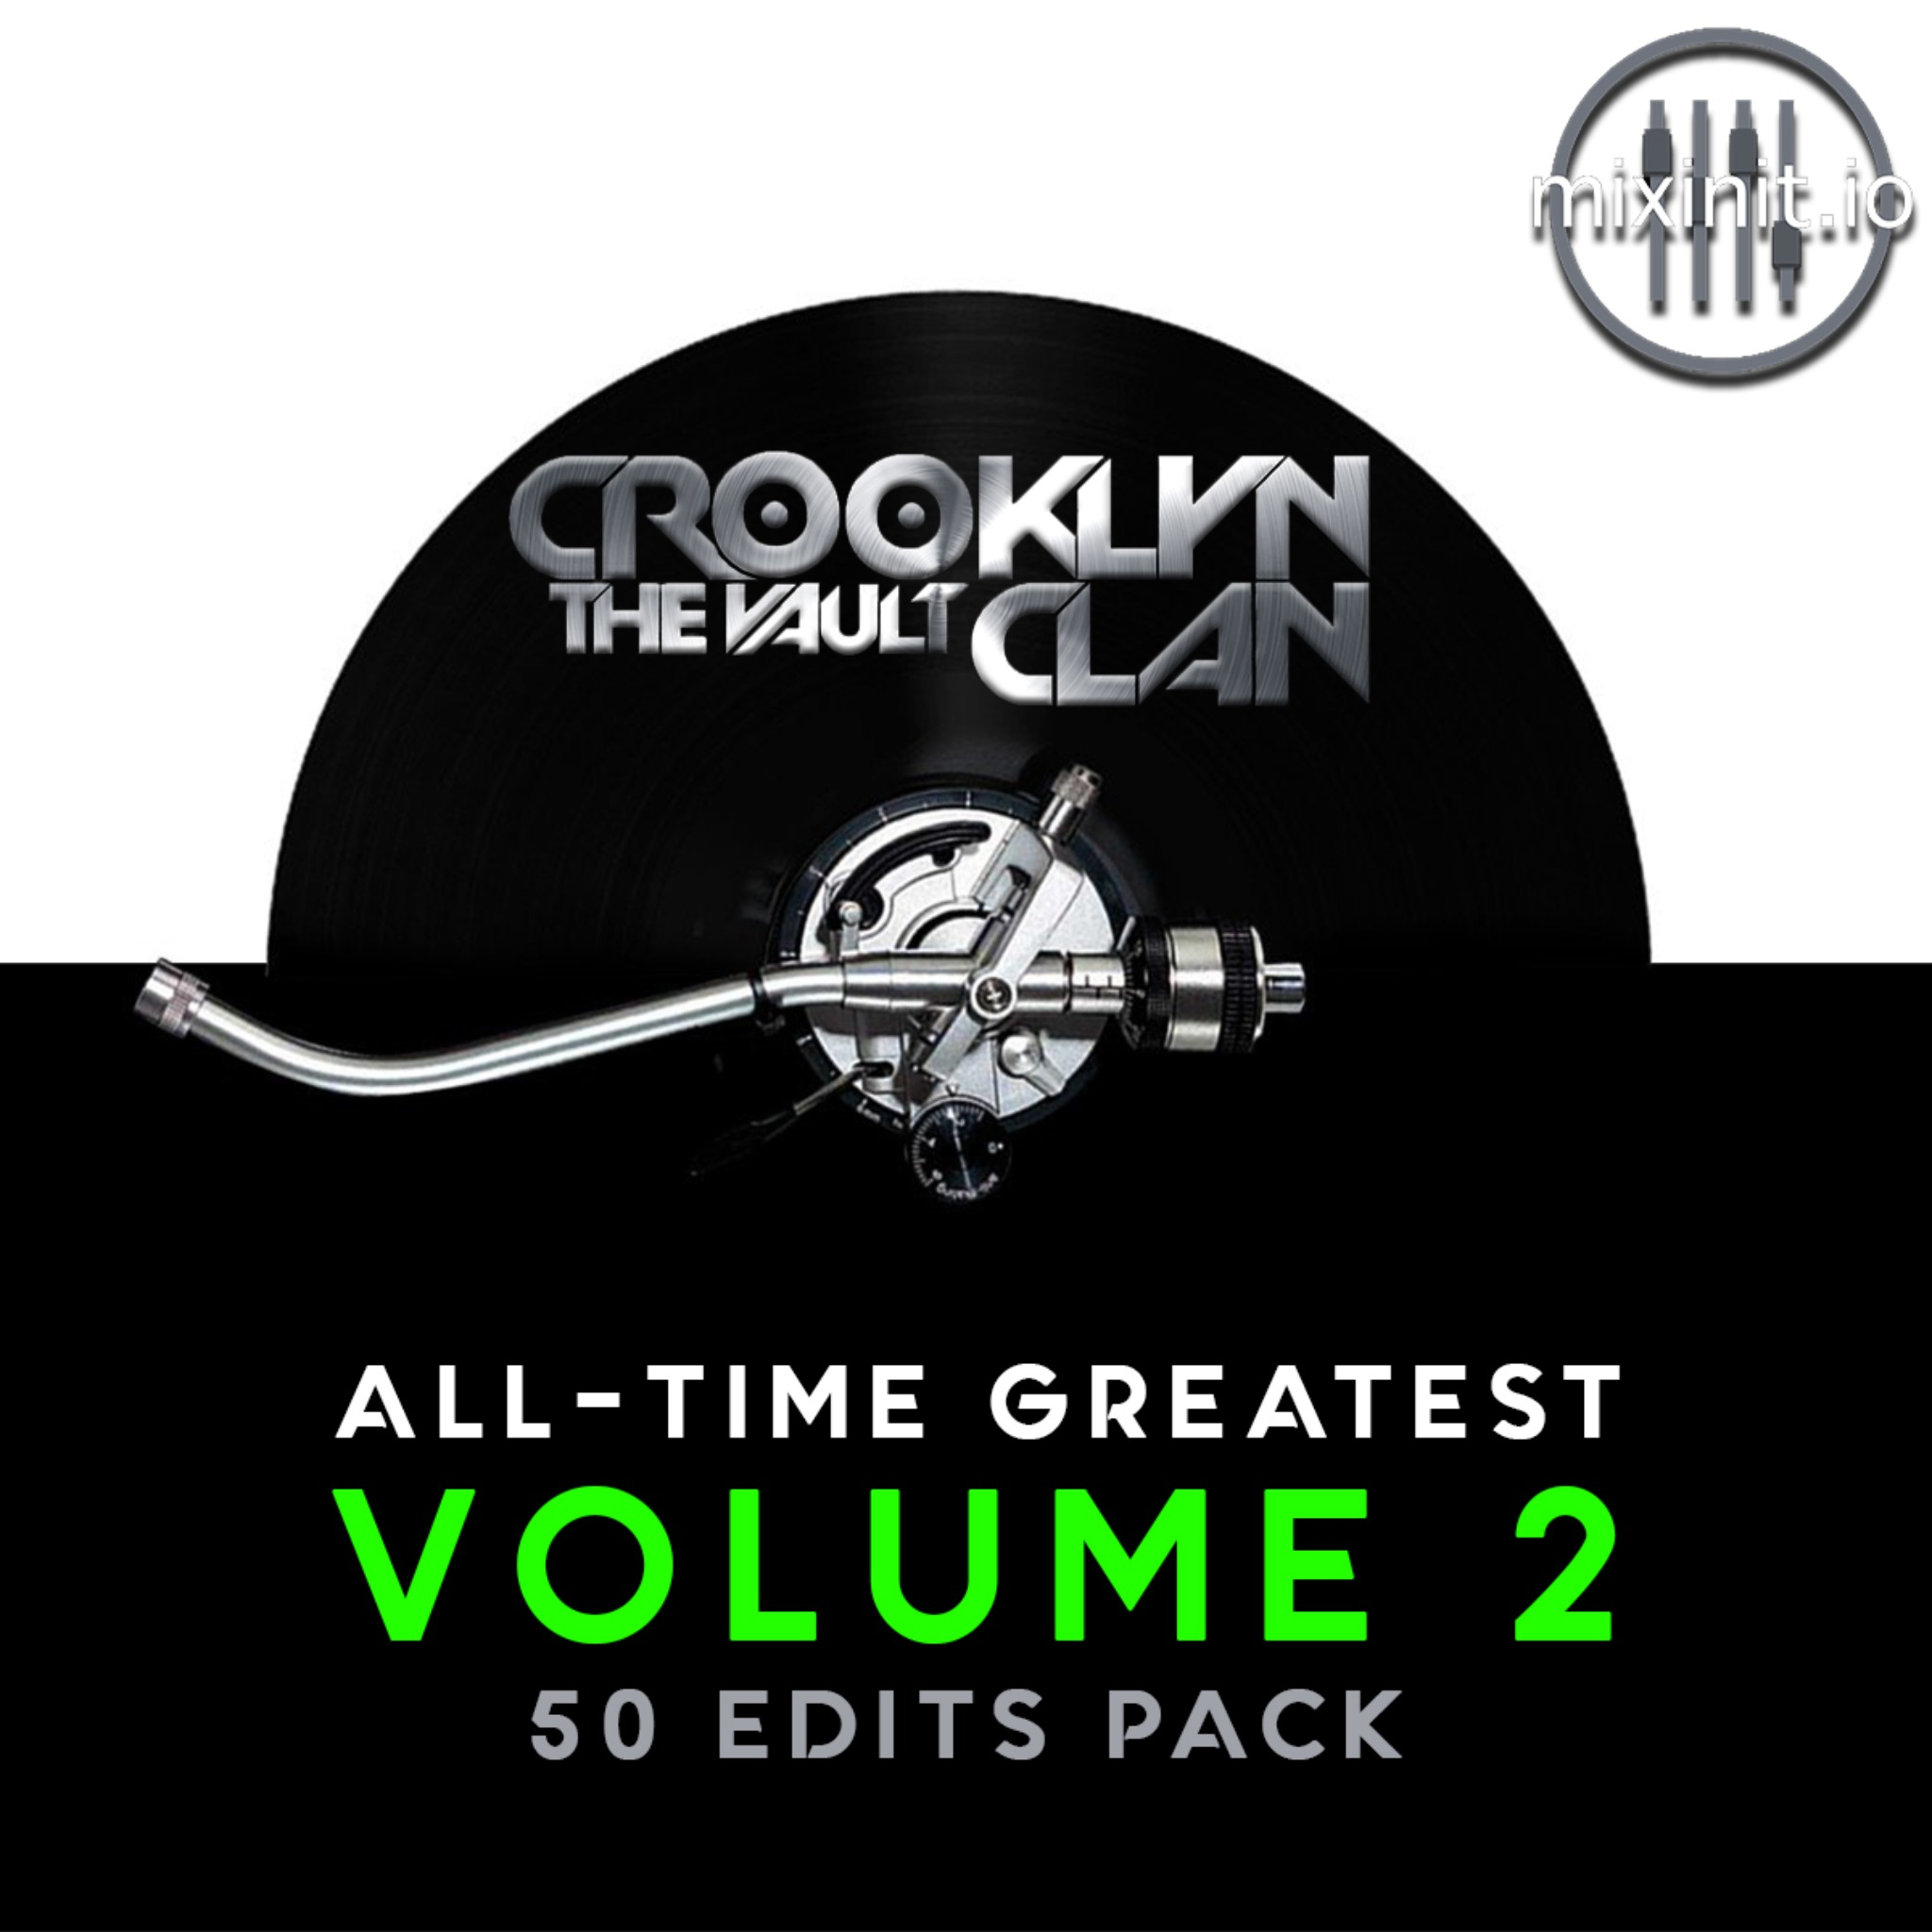 Best Of The Crooklyn Clan Vault Vol. 2 (Various Editors)